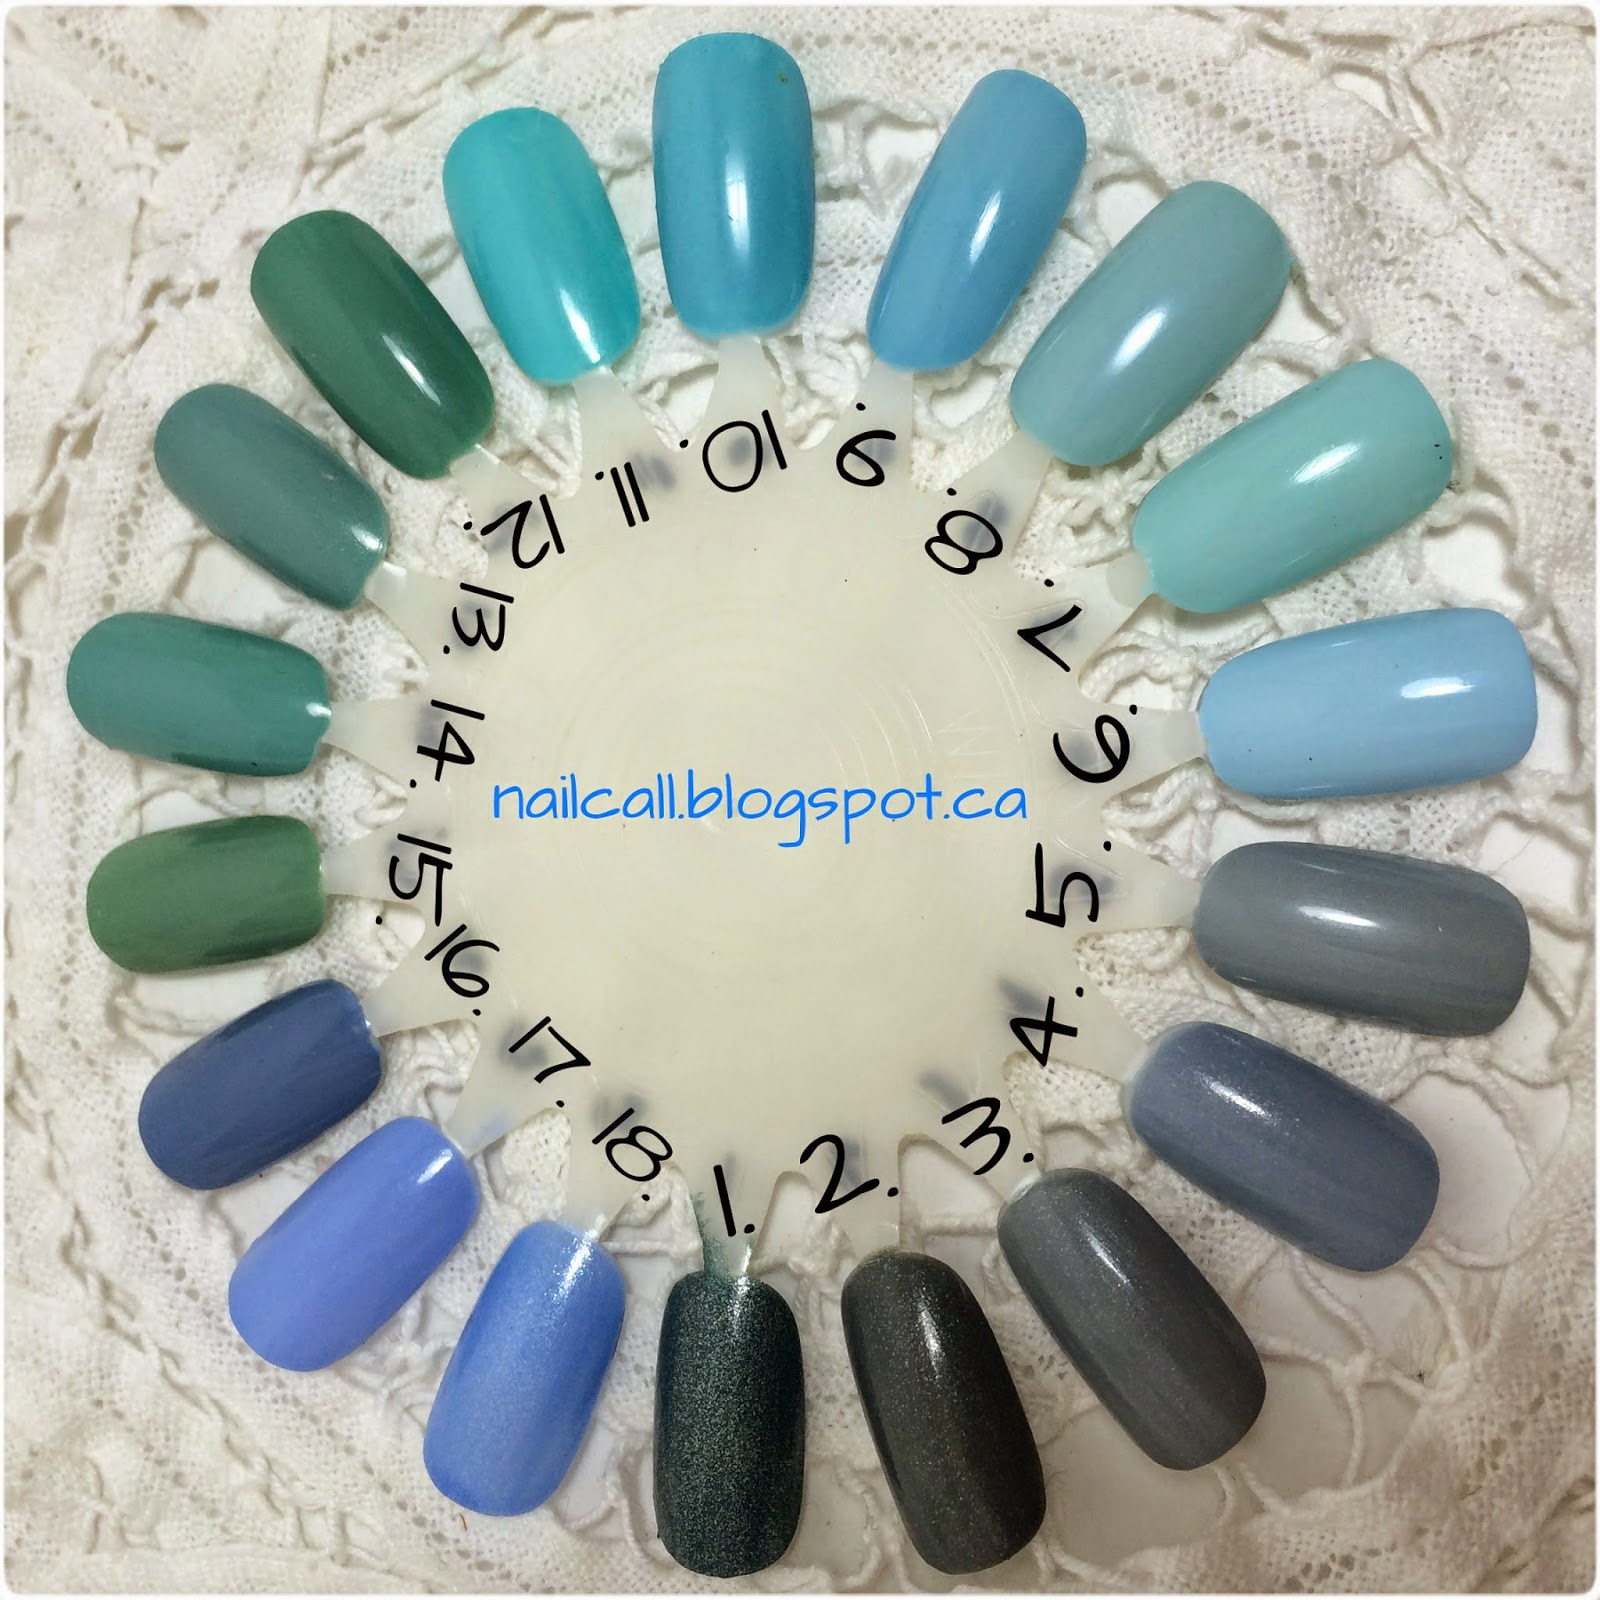 Blue nail polish swatched on a nail wheel